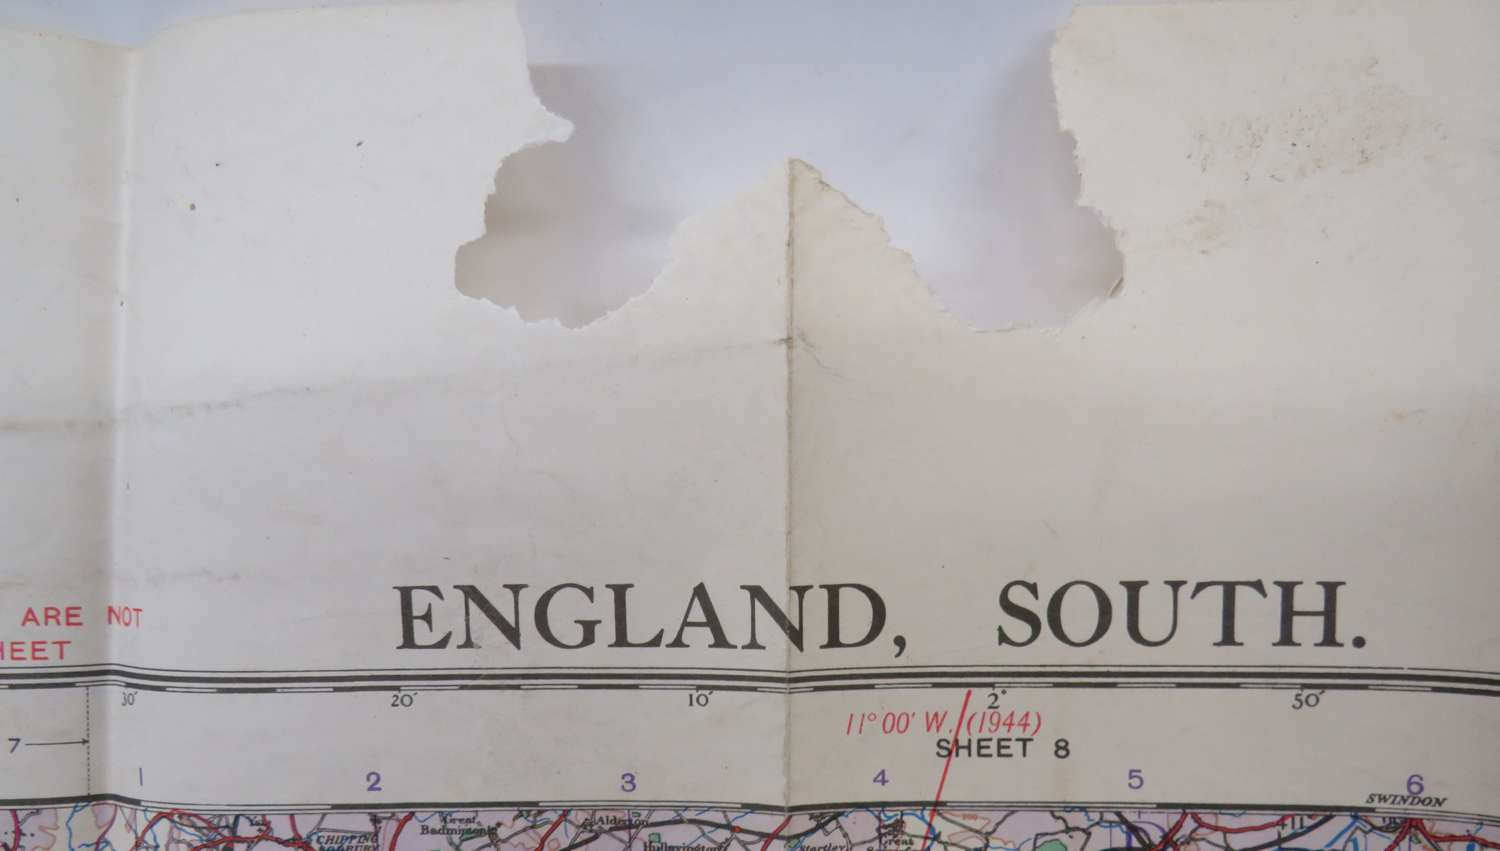 WW2 British Military Air Map of England South